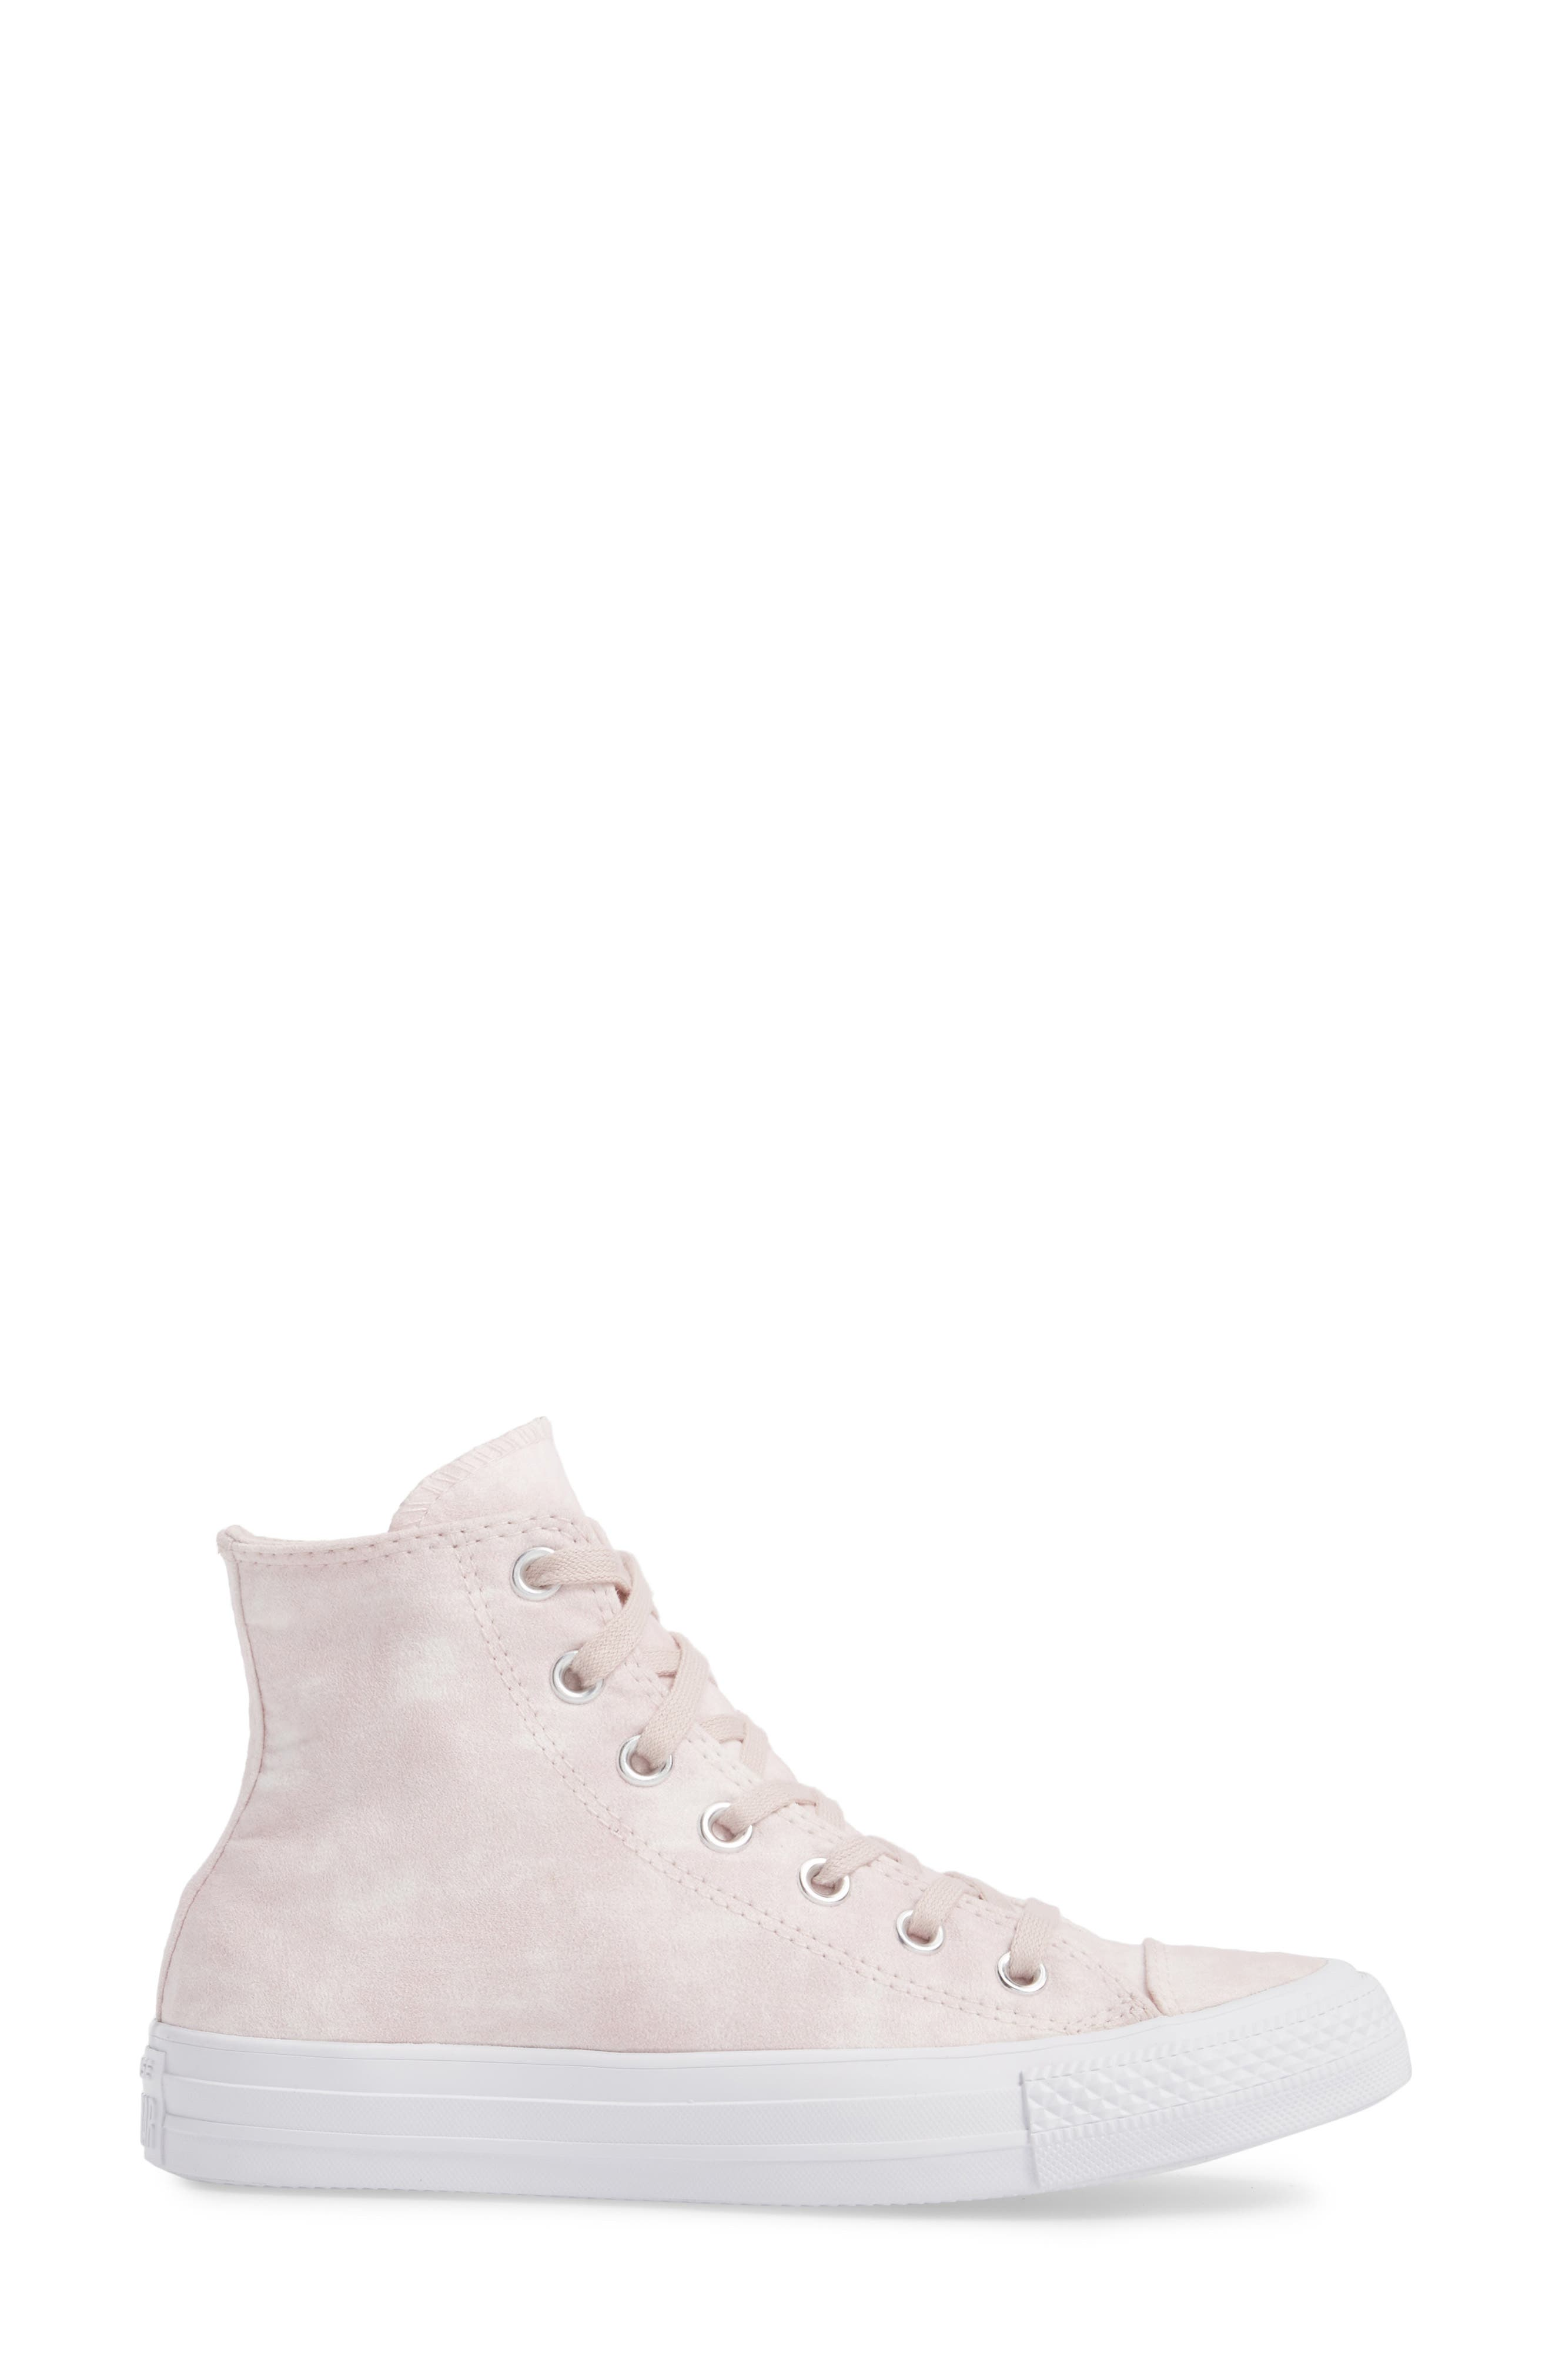 Chuck Taylor<sup>®</sup> All Star<sup>®</sup> Peached High Top Sneaker,                             Alternate thumbnail 3, color,                             Barely Rose